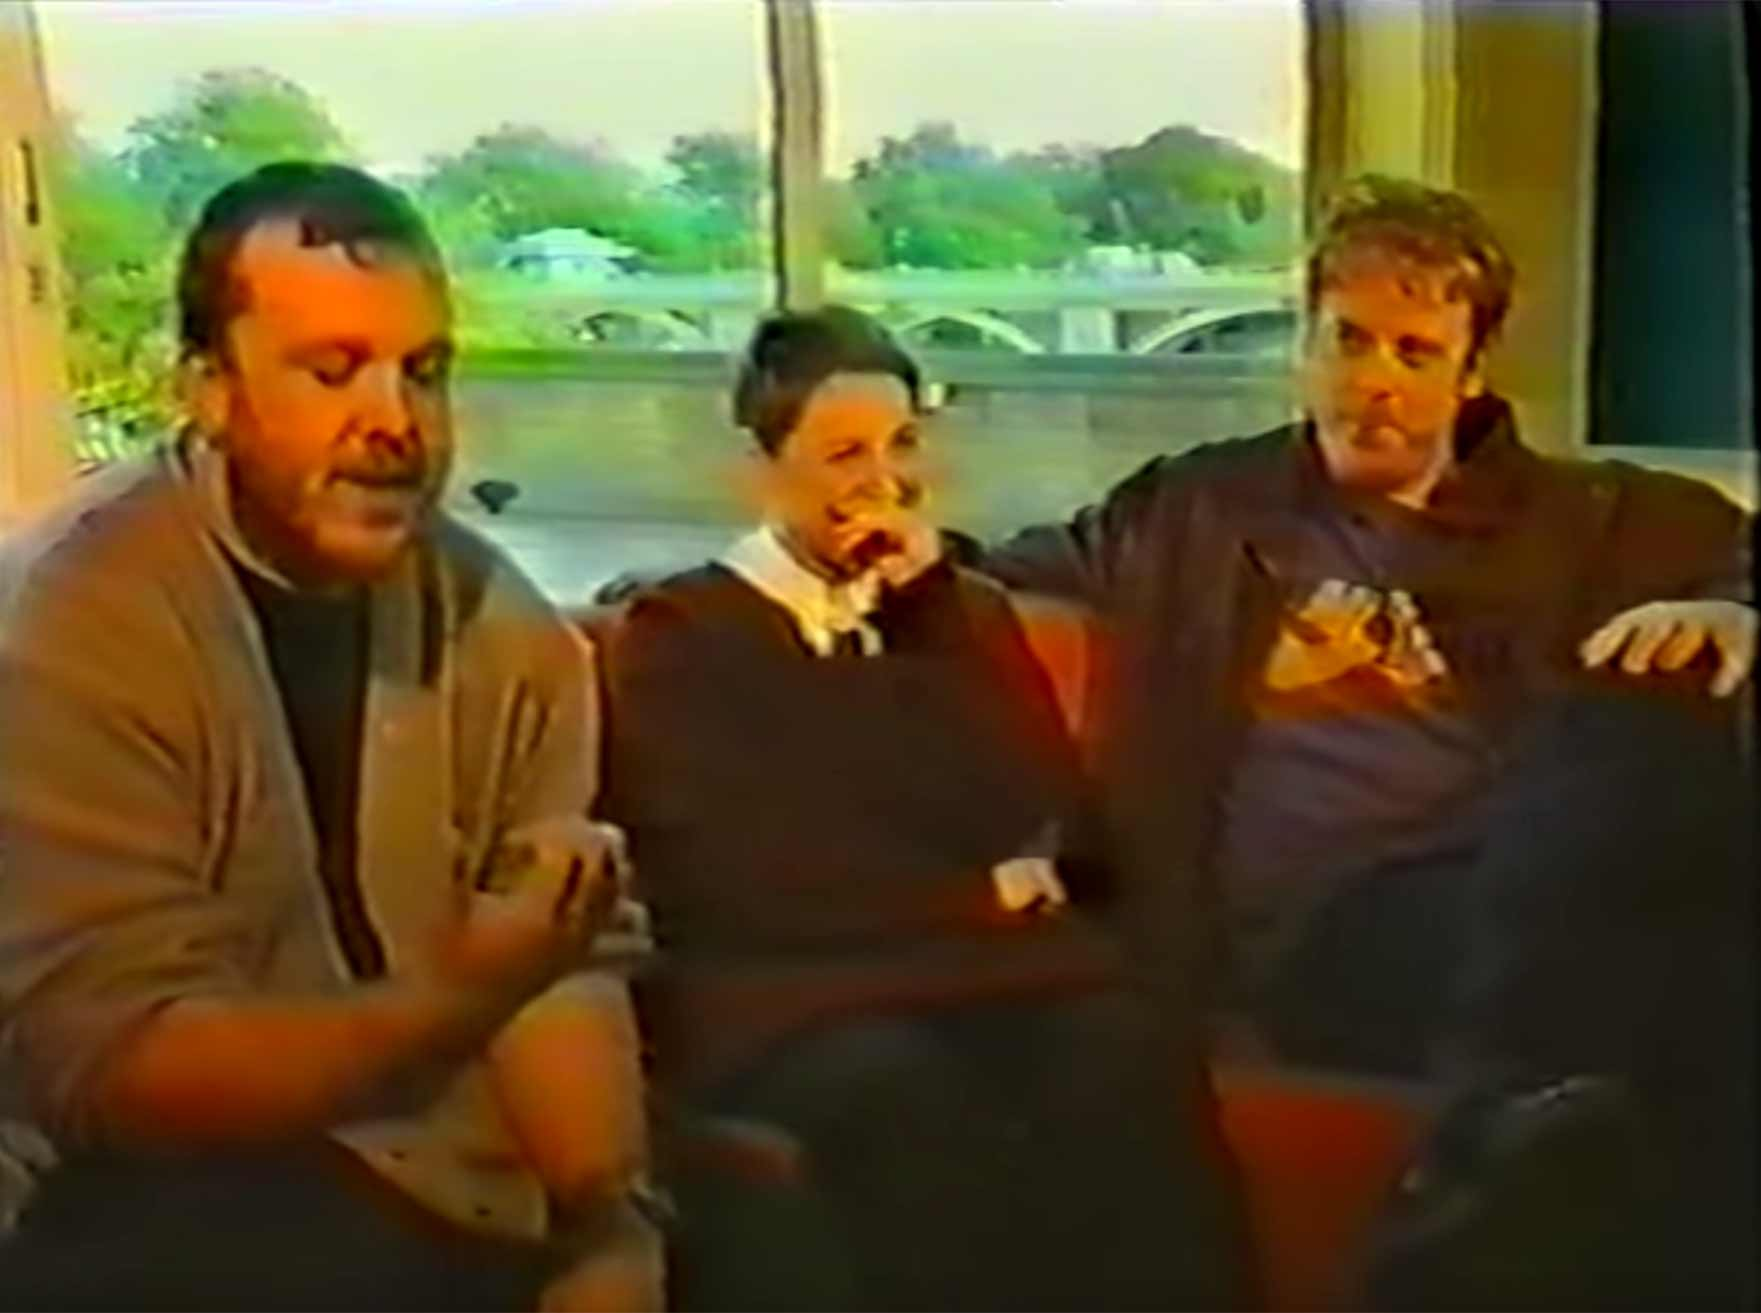 1995 Interview with the group